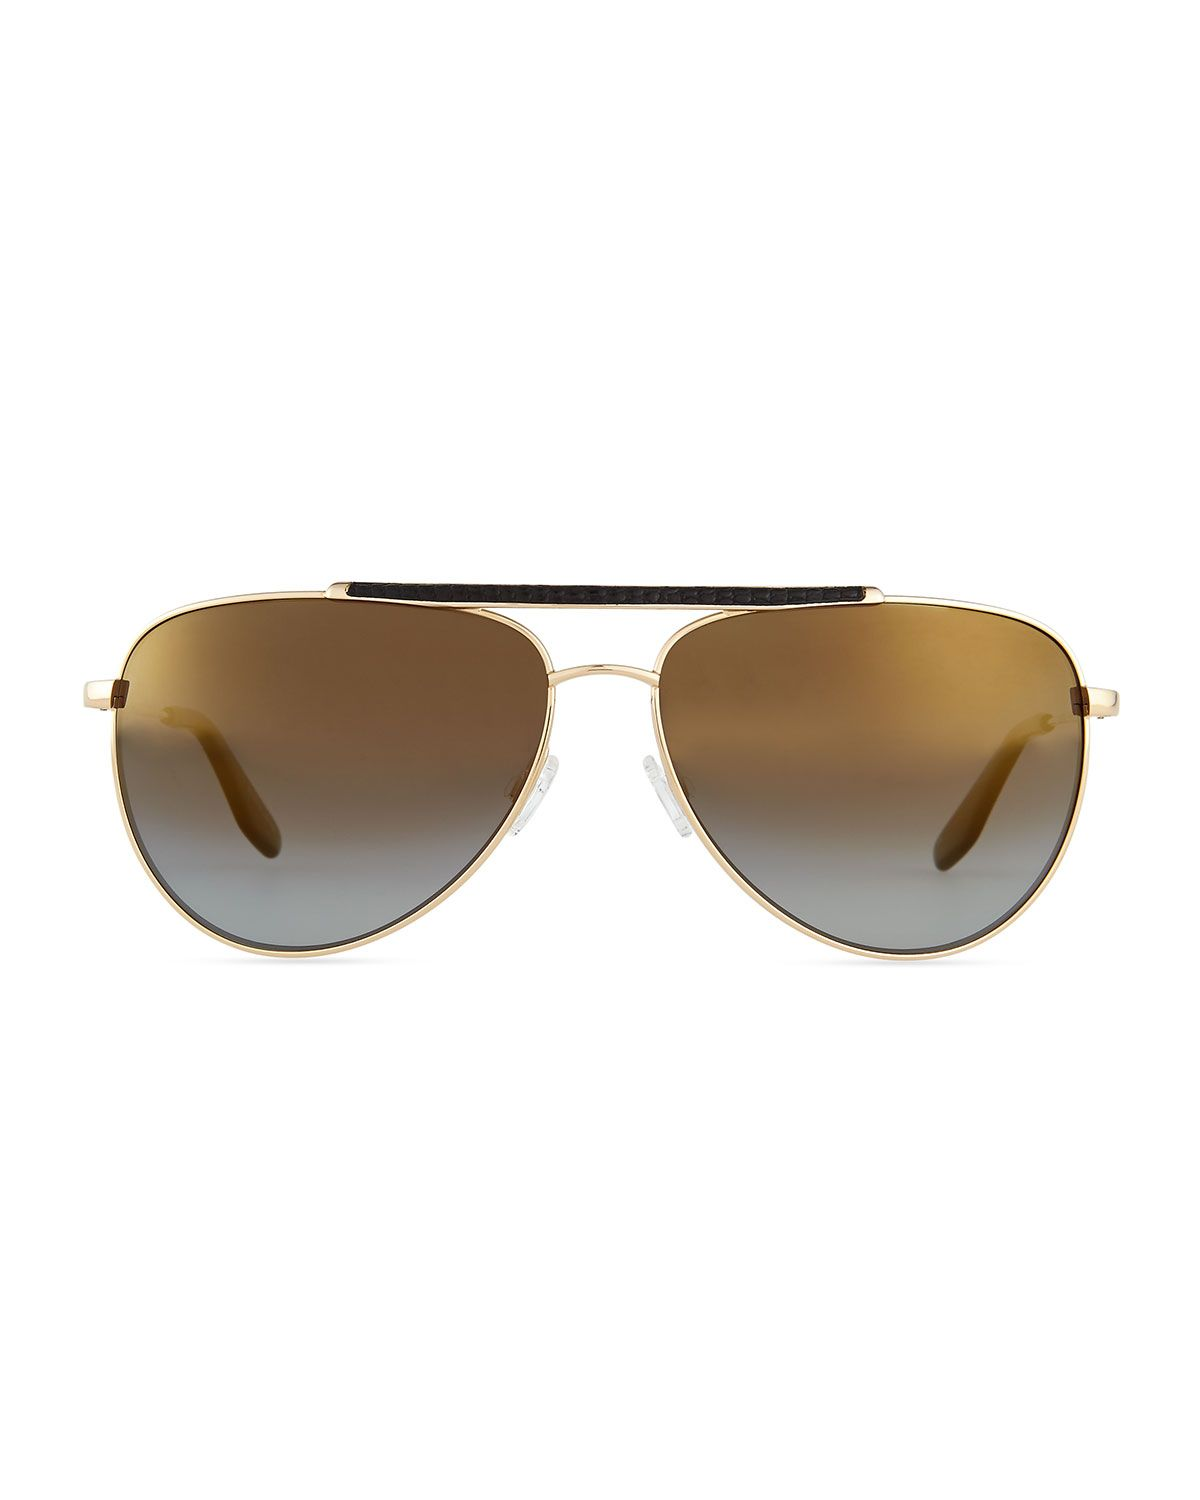 Breed Leather-Detail Mirrored Polarized Aviator Sunglasses, Golden/Nightfall